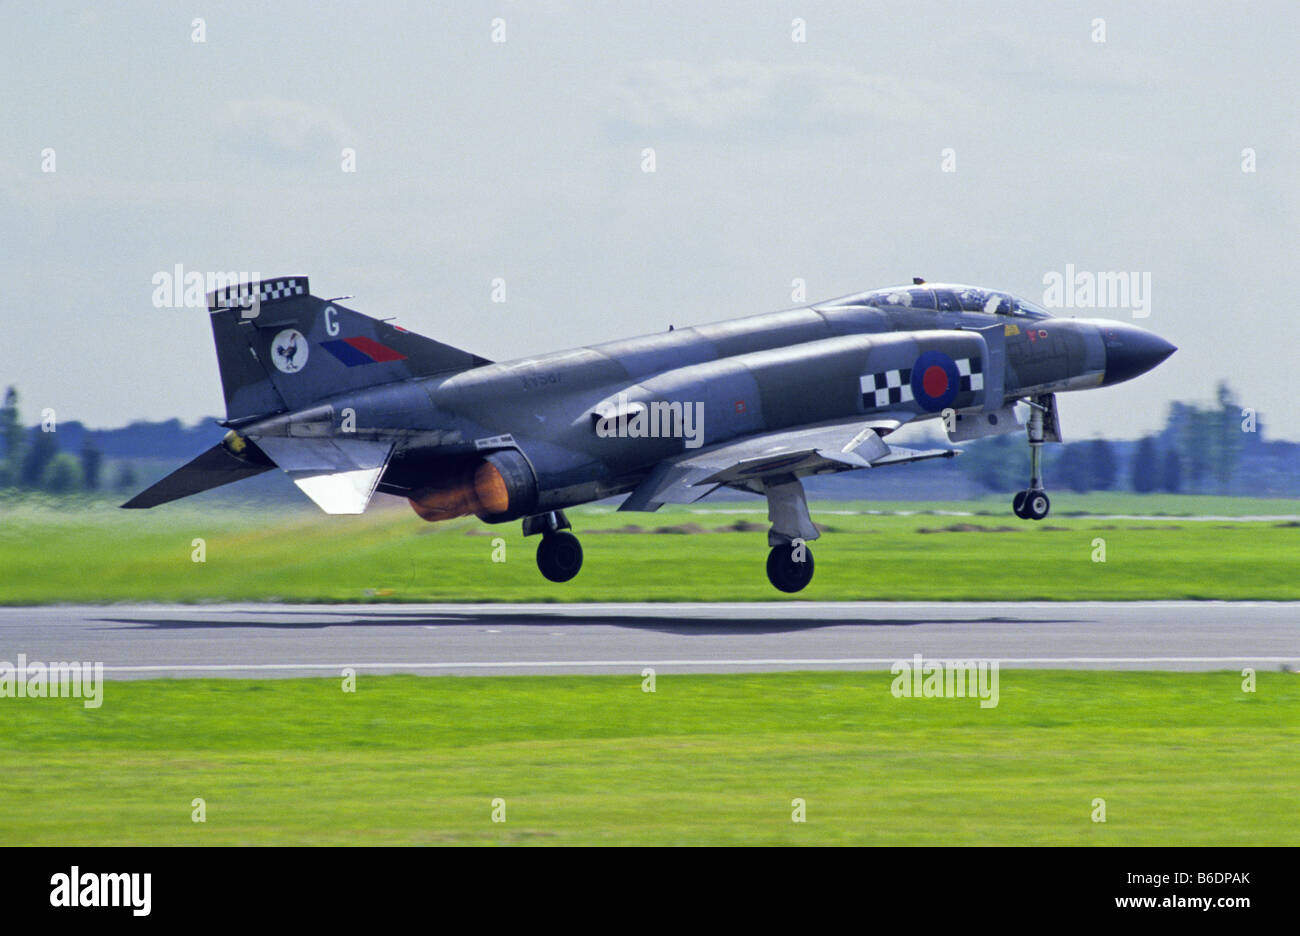 RAF McDonnell Douglas Phantom FG1 is to Take off at Mildenhall Airfield England - Stock Image